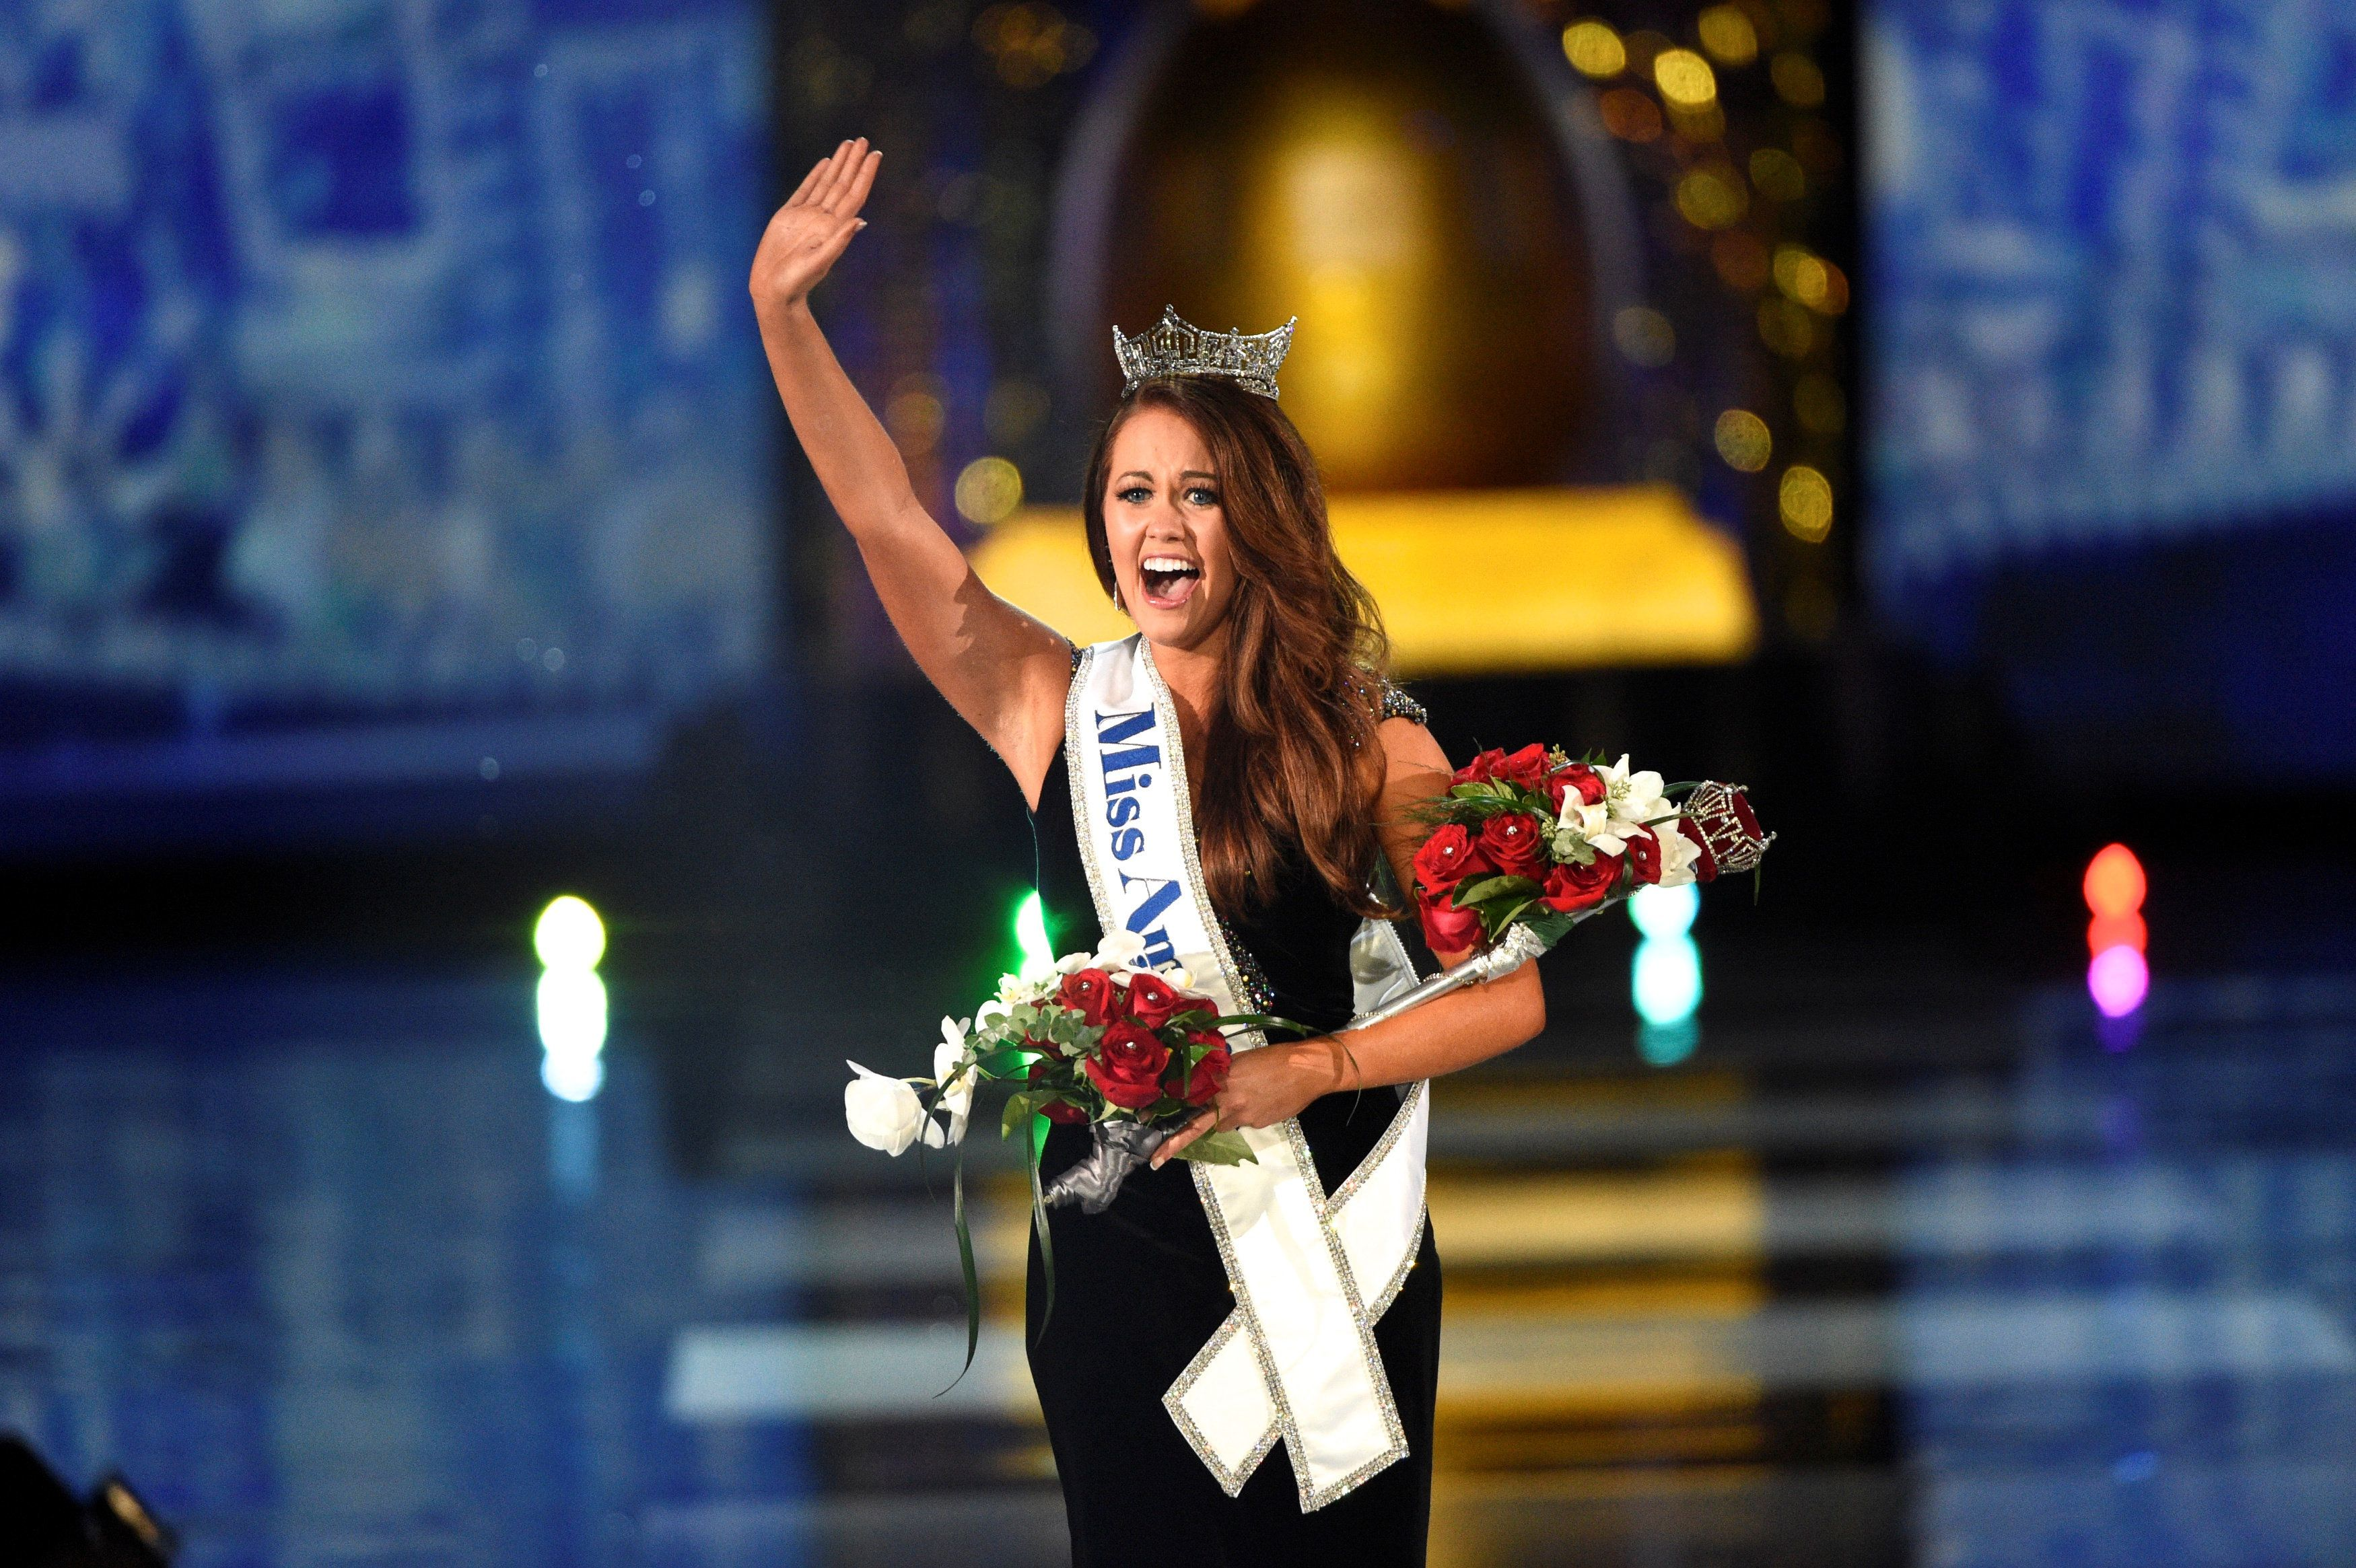 Miss North Dakota Cara Mund reacts after being announced as the winner of the 97th Miss America Competition in Atlantic City, New Jersey U.S. September 10, 2017.  REUTERS/Mark Makela